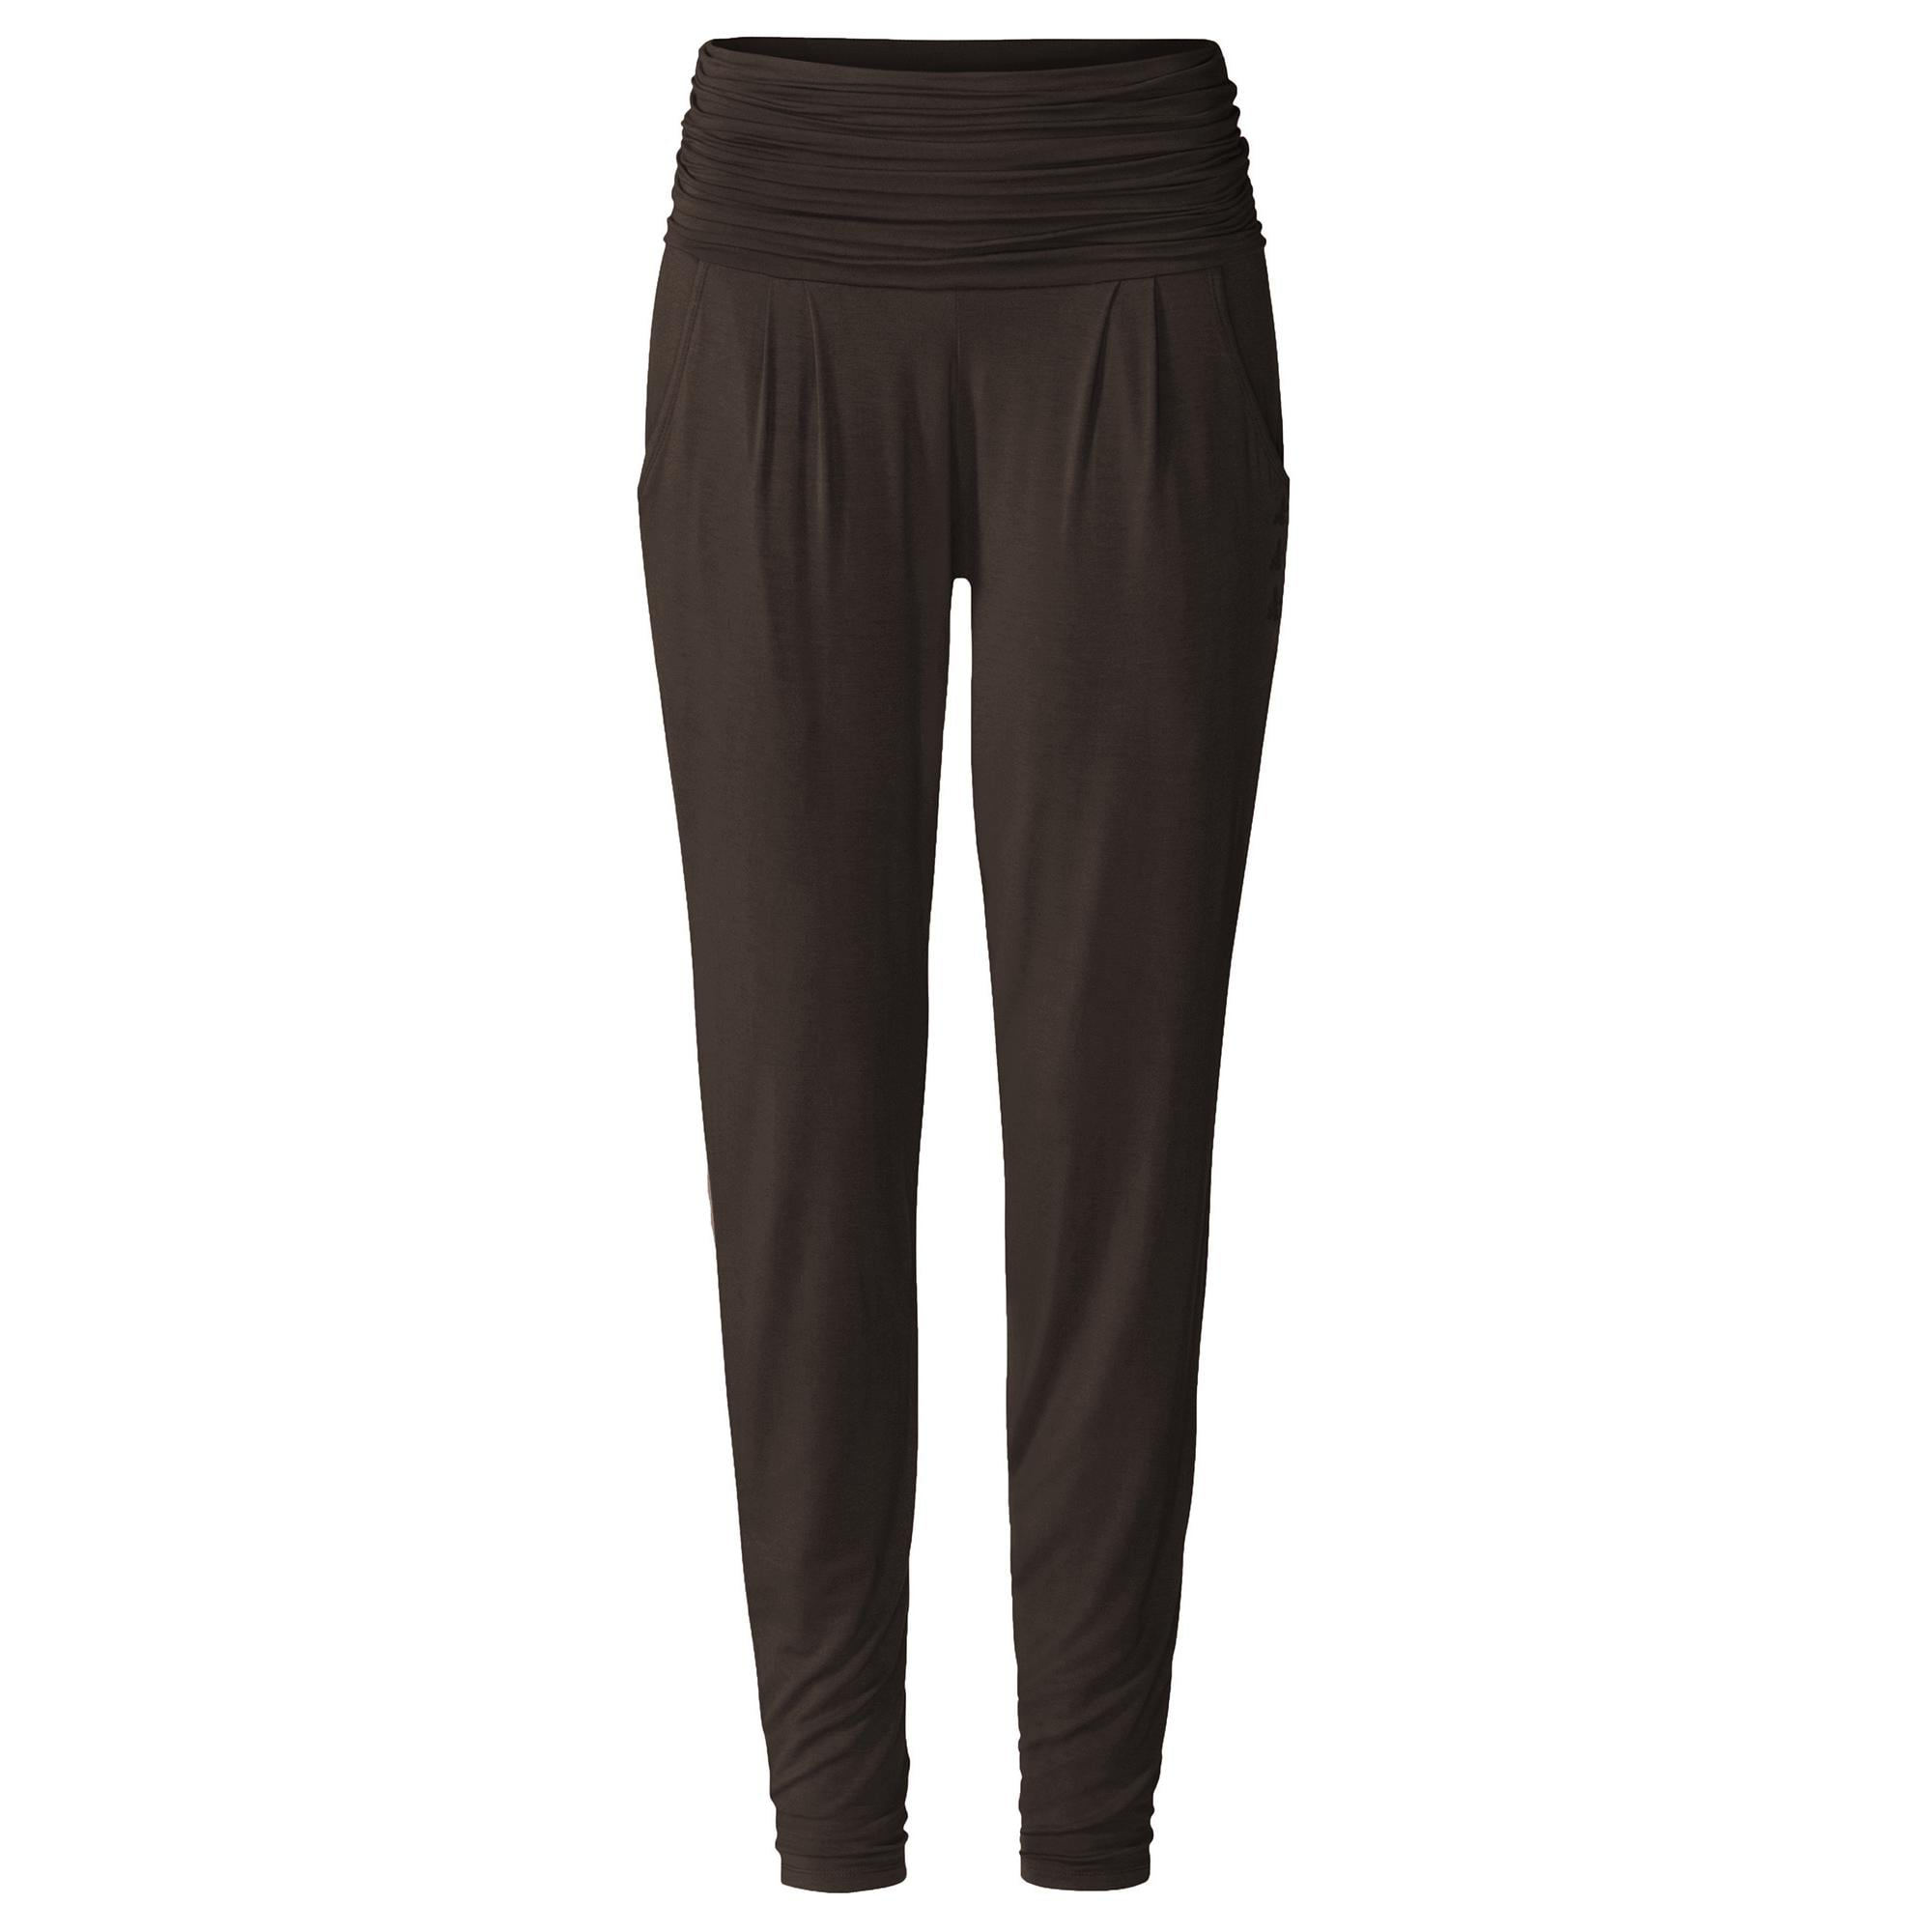 Curare Long Pants roll down chocolate